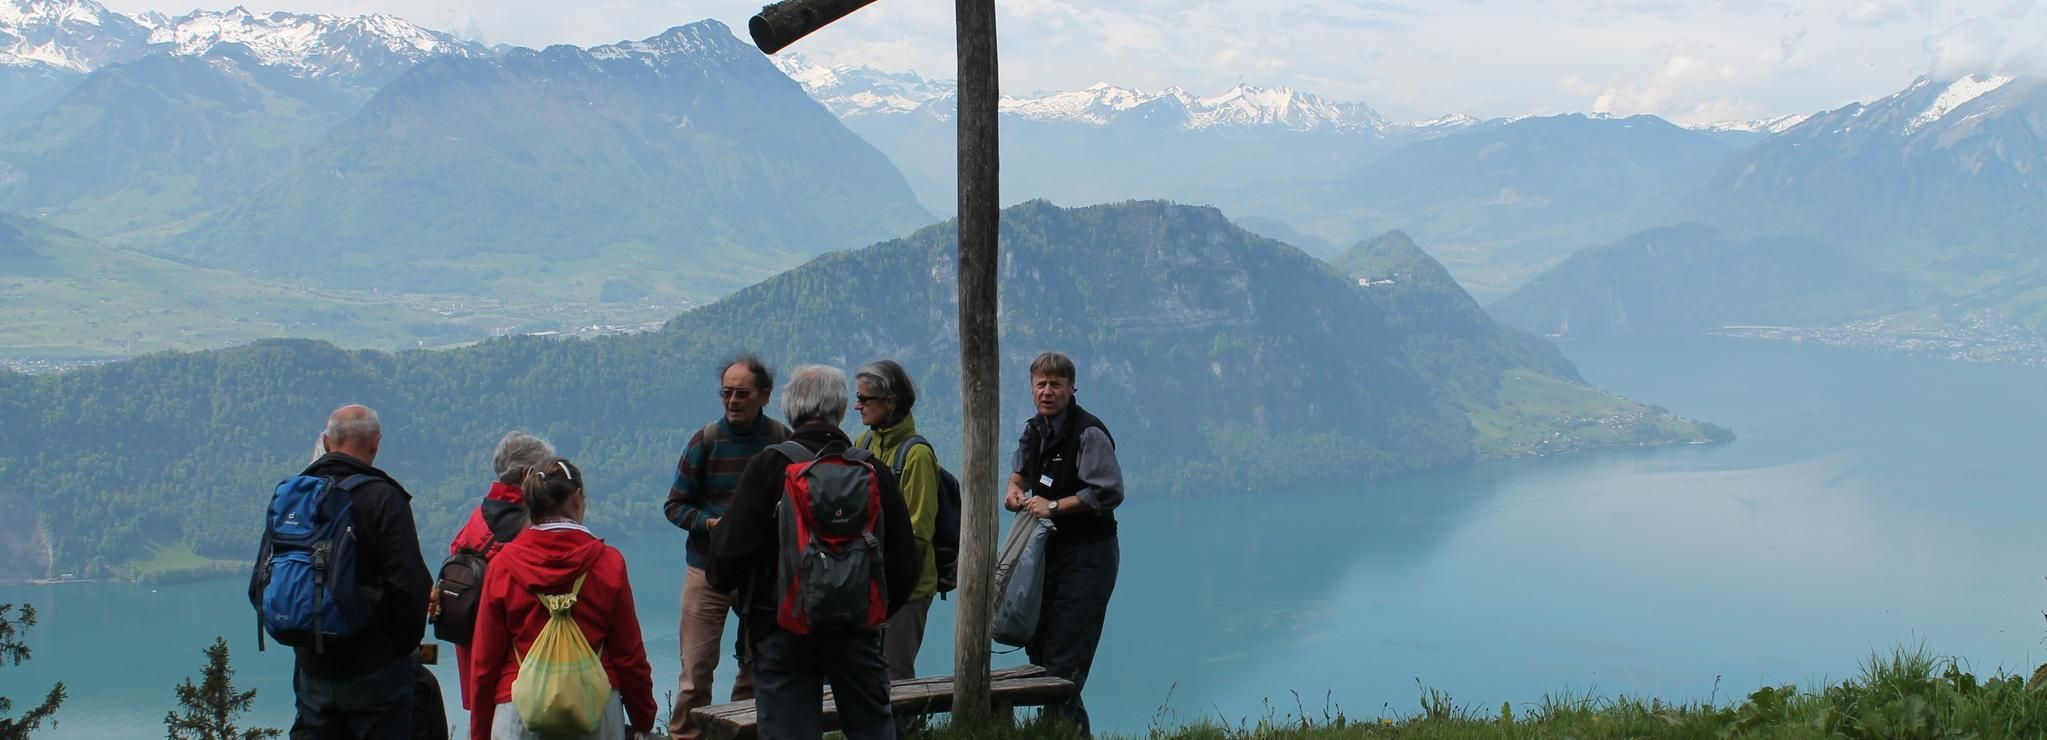 Mount Rigi Guided Hike from Lucerne